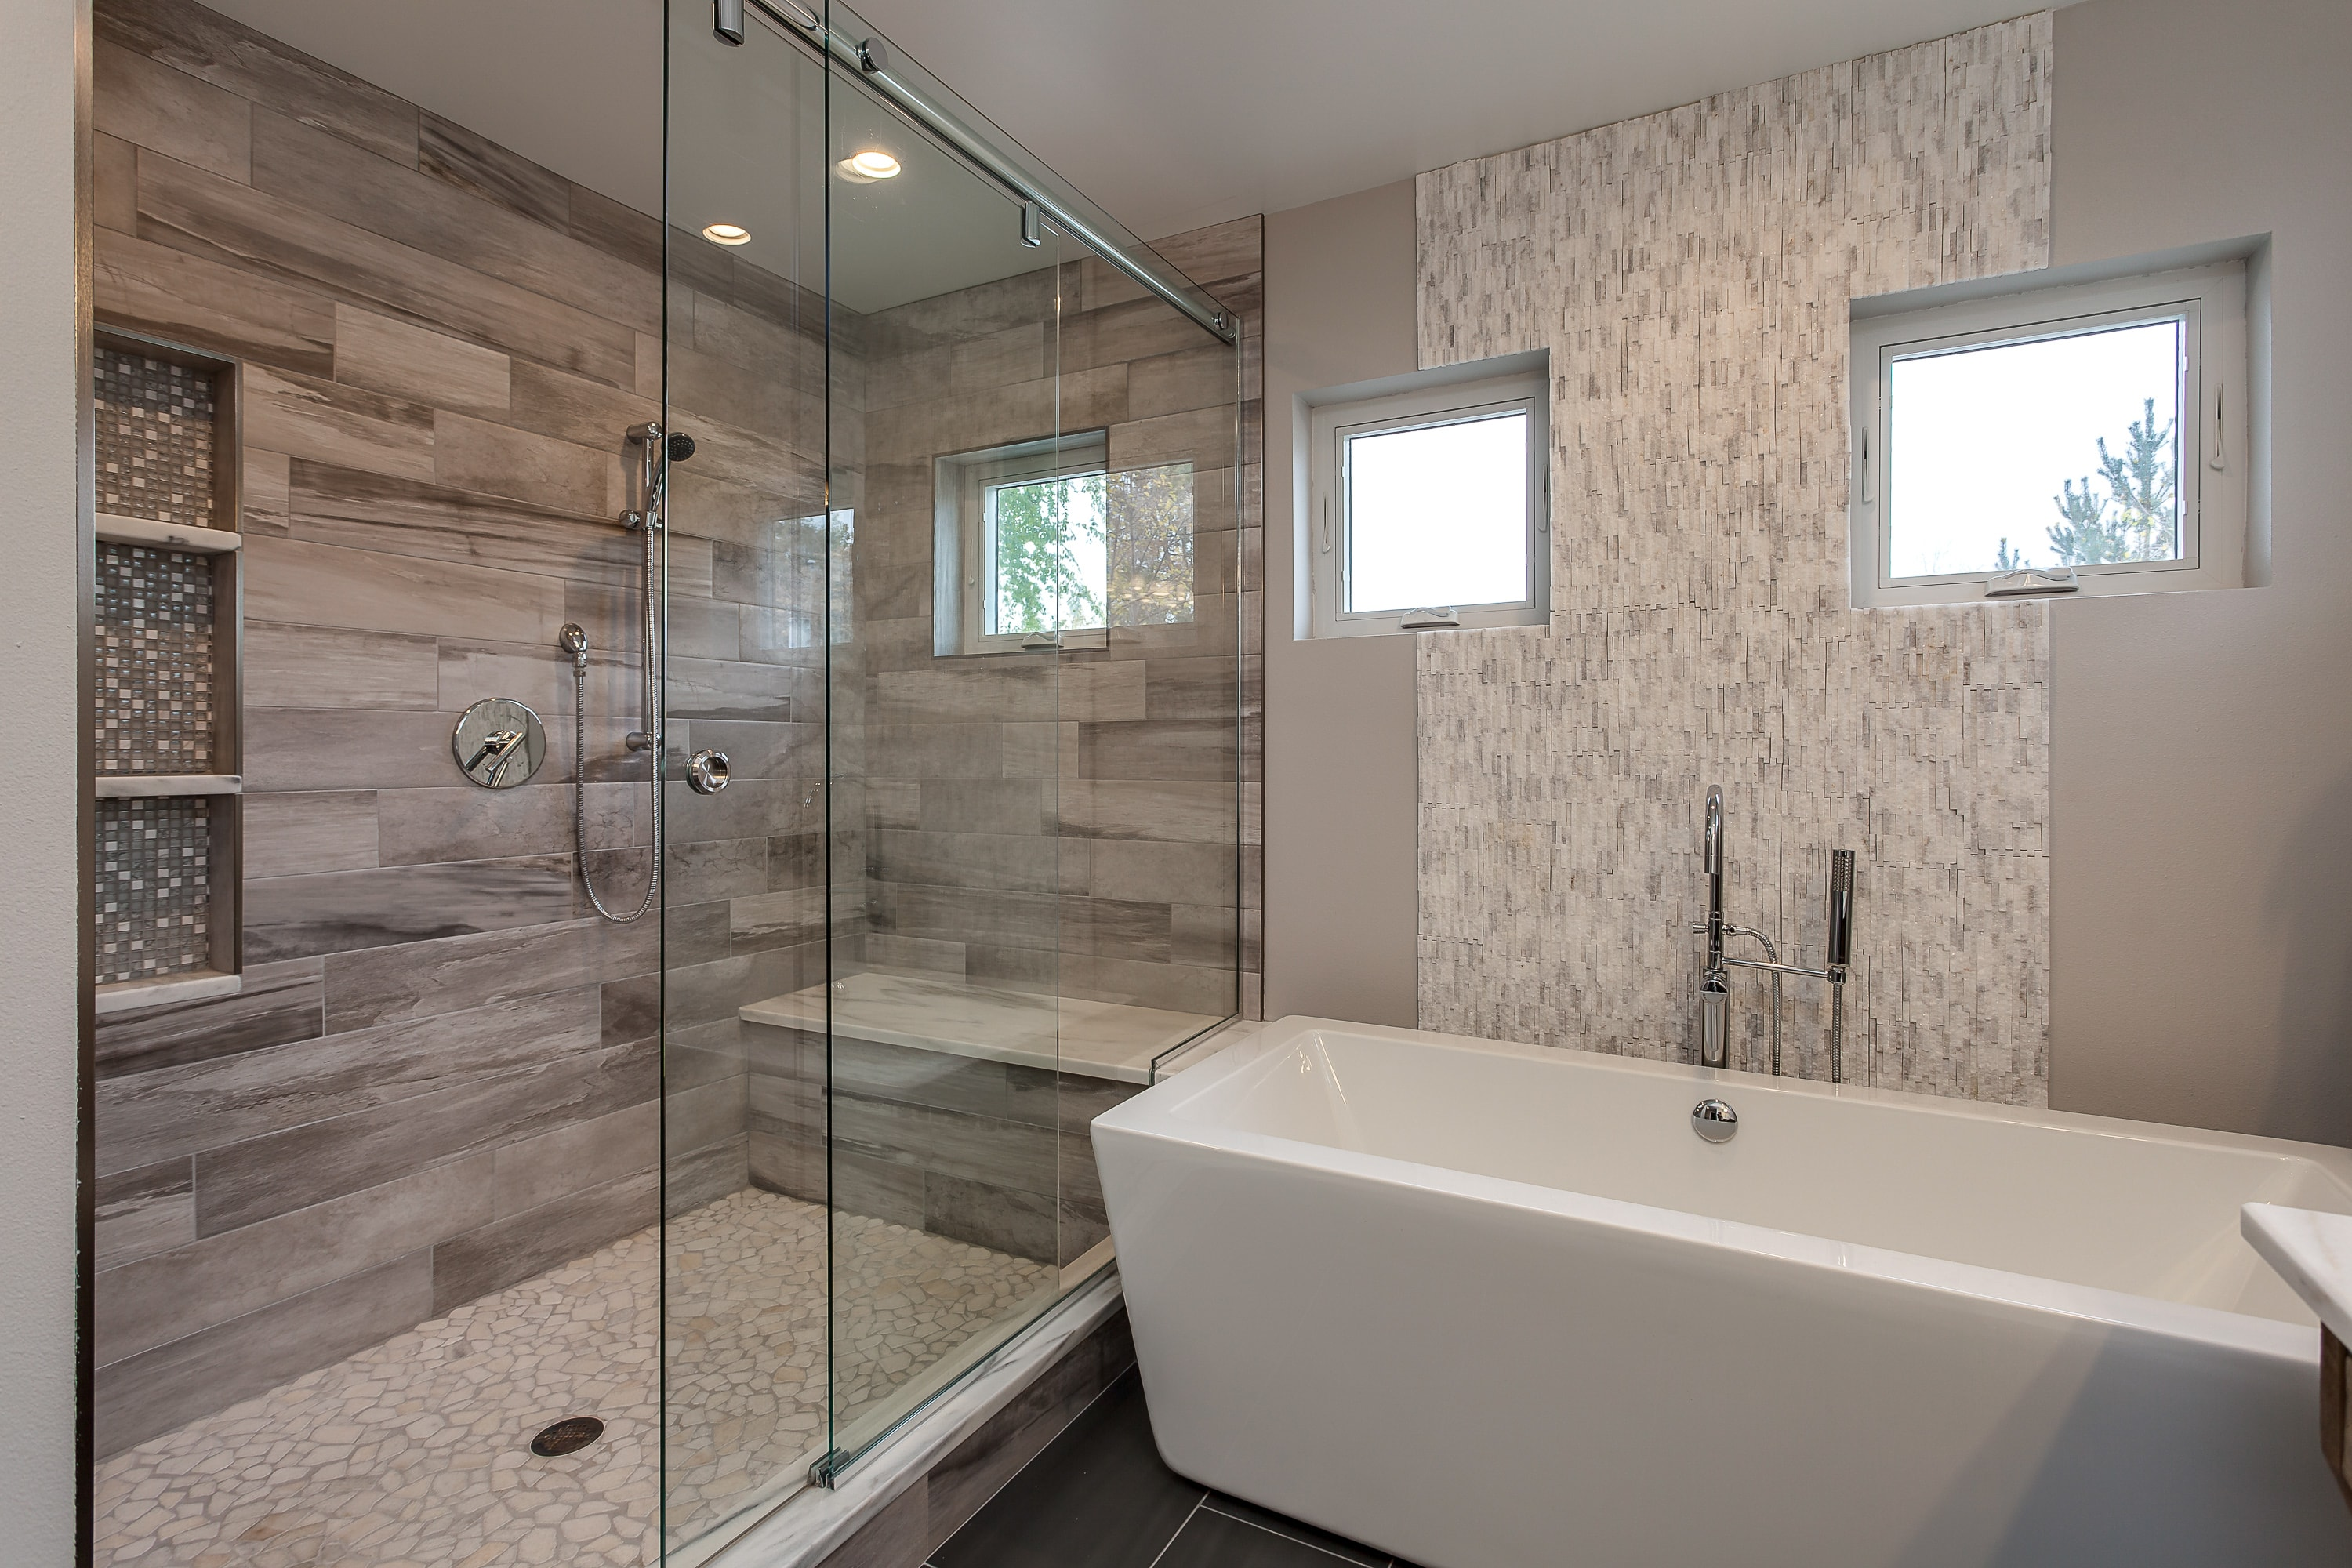 Contemporary bathroom with walk-in shower